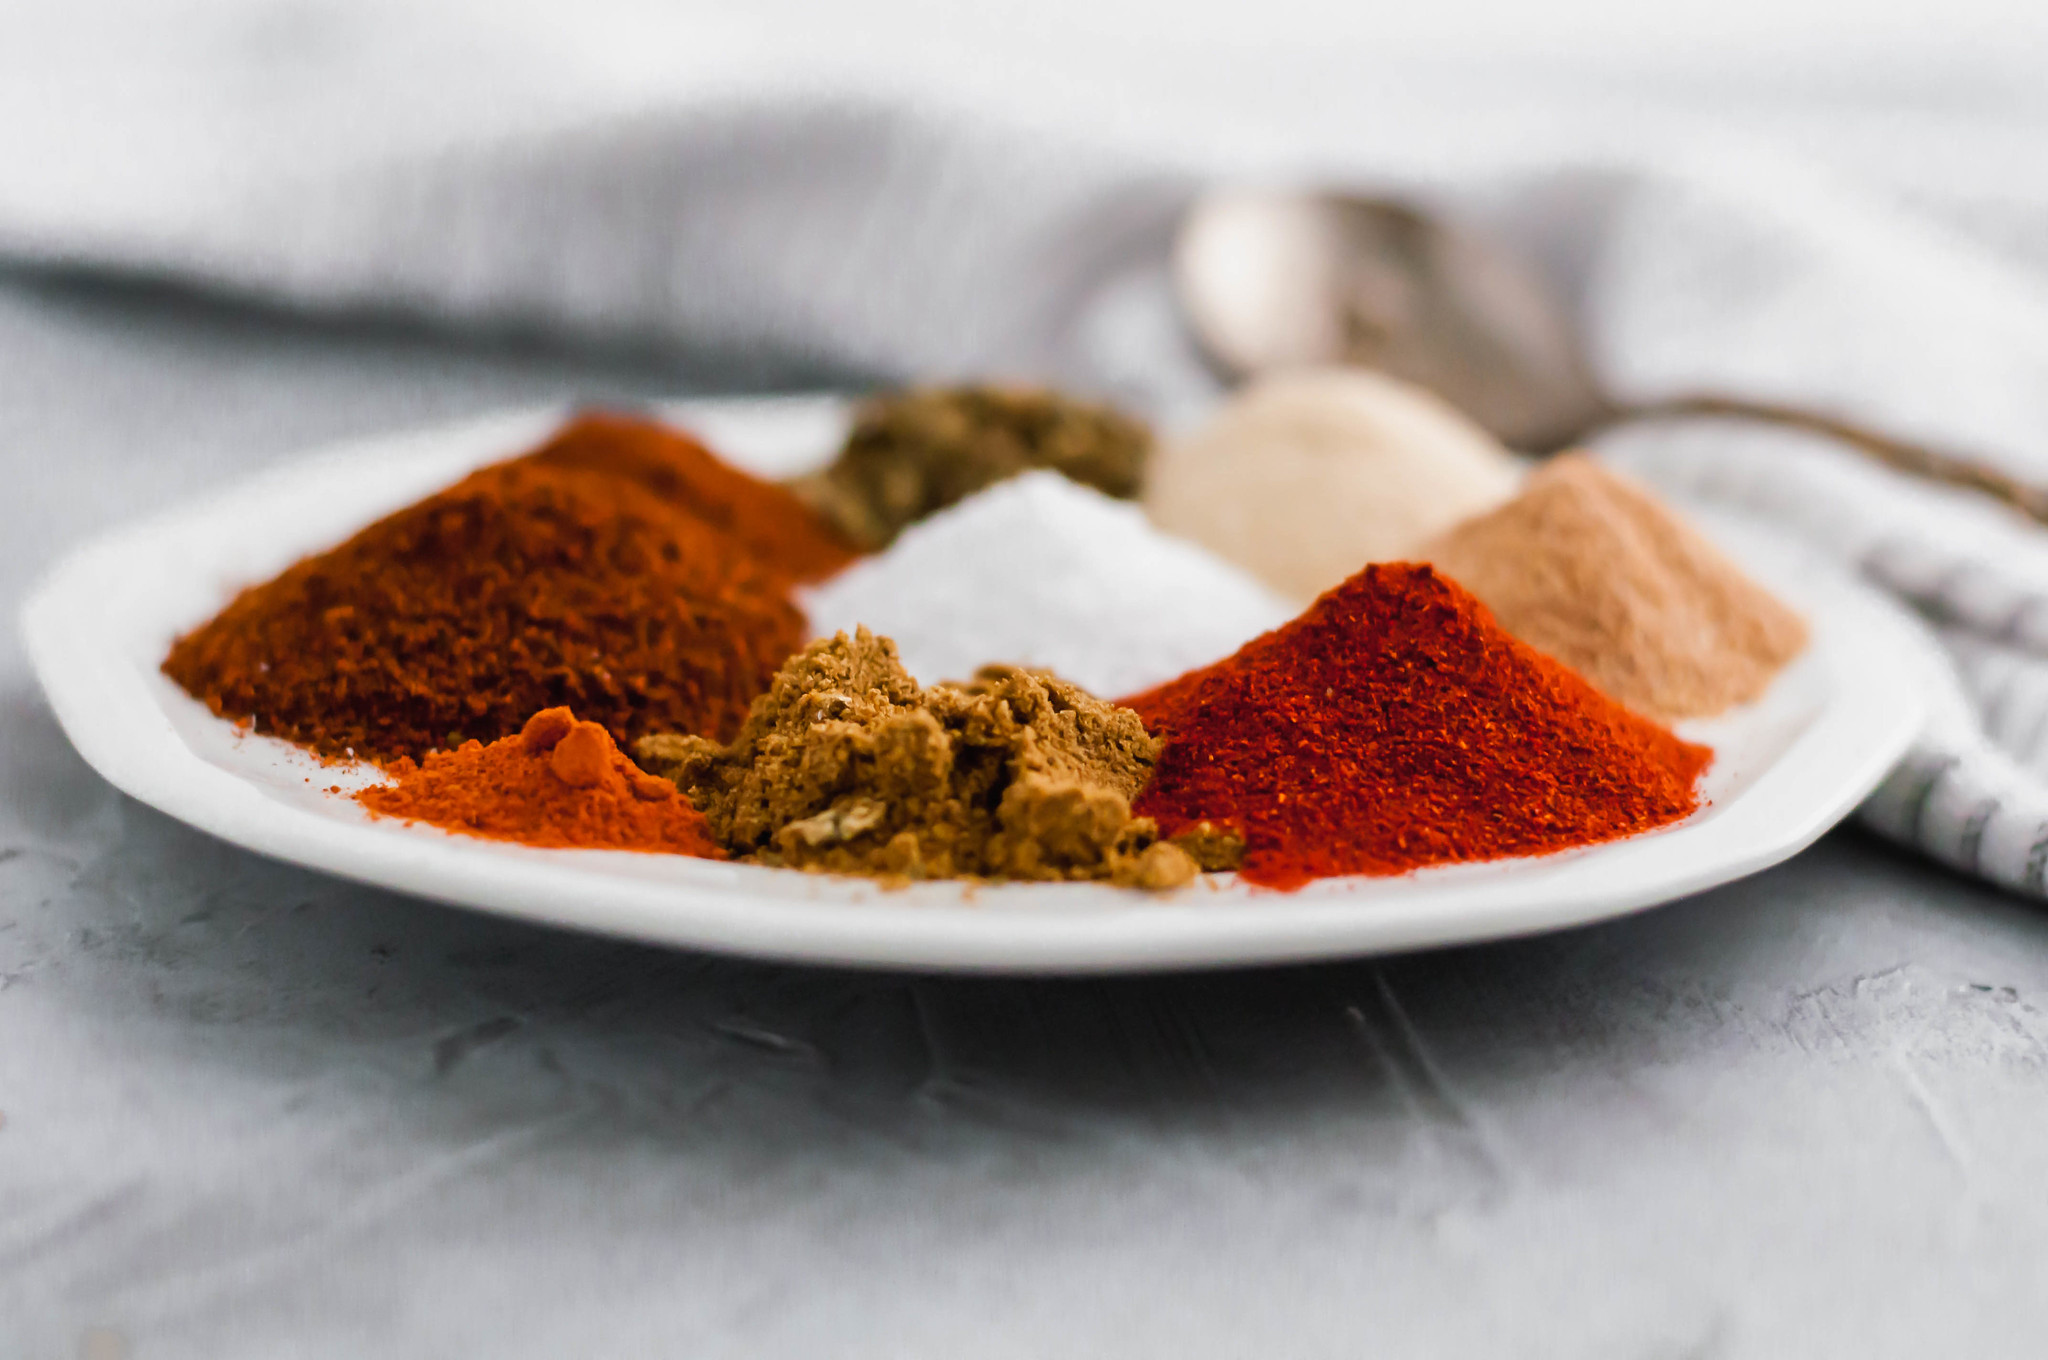 This Fajita Seasoning Recipe will make you forget the store-bought stuff. Using pantry staples, make your own spicy, smoky fajita seasoning just how you like it. No natural flavors or weird ingredients in this homemade spice mix.